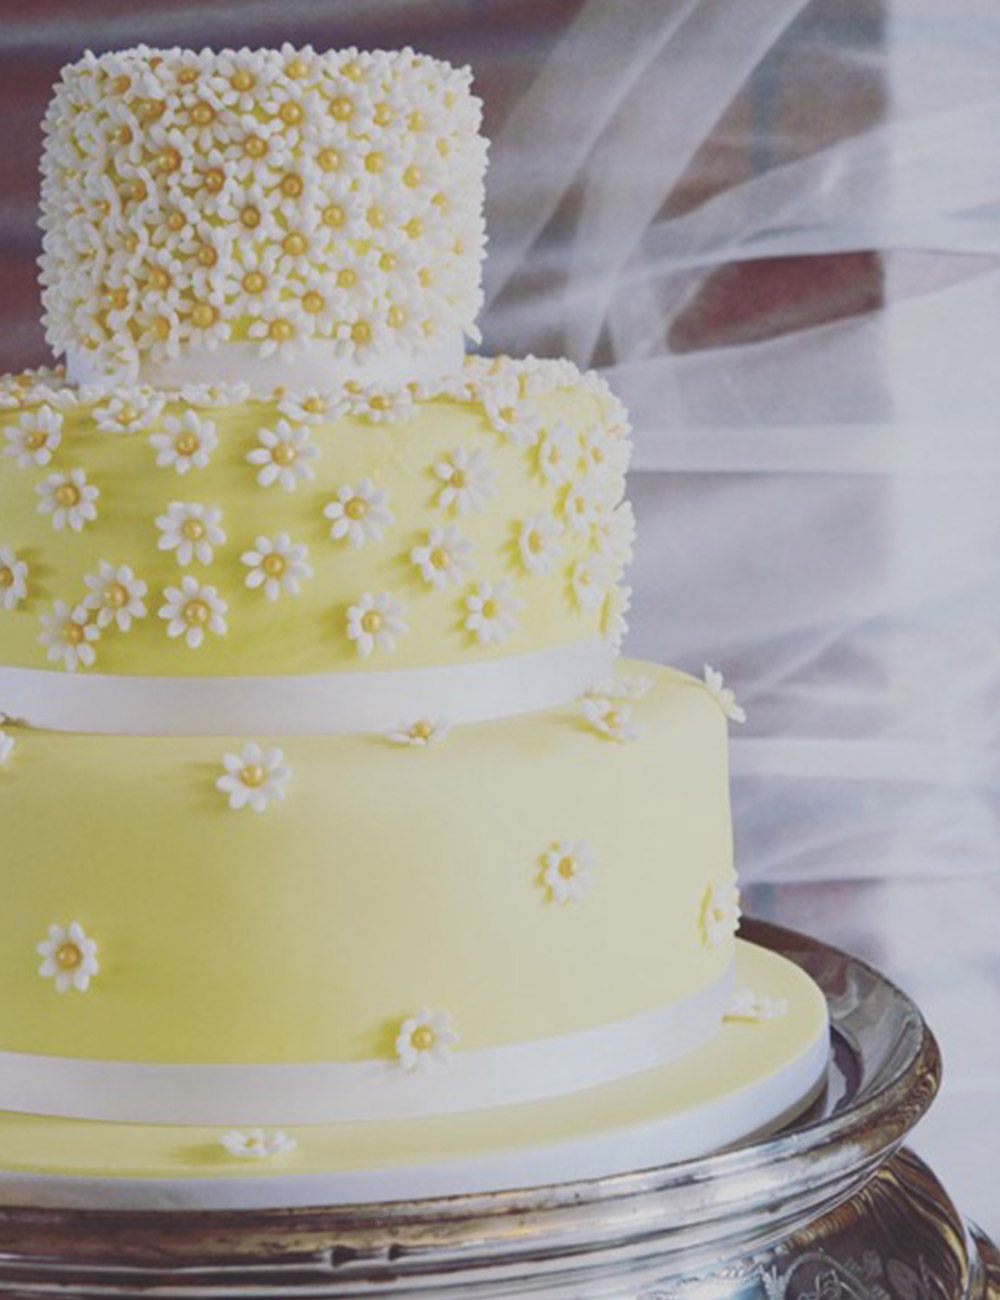 Boo To A Goose   Private Chef and Wedding Cakes from Tavistock  Devon Daisy flower yellow wedding cake